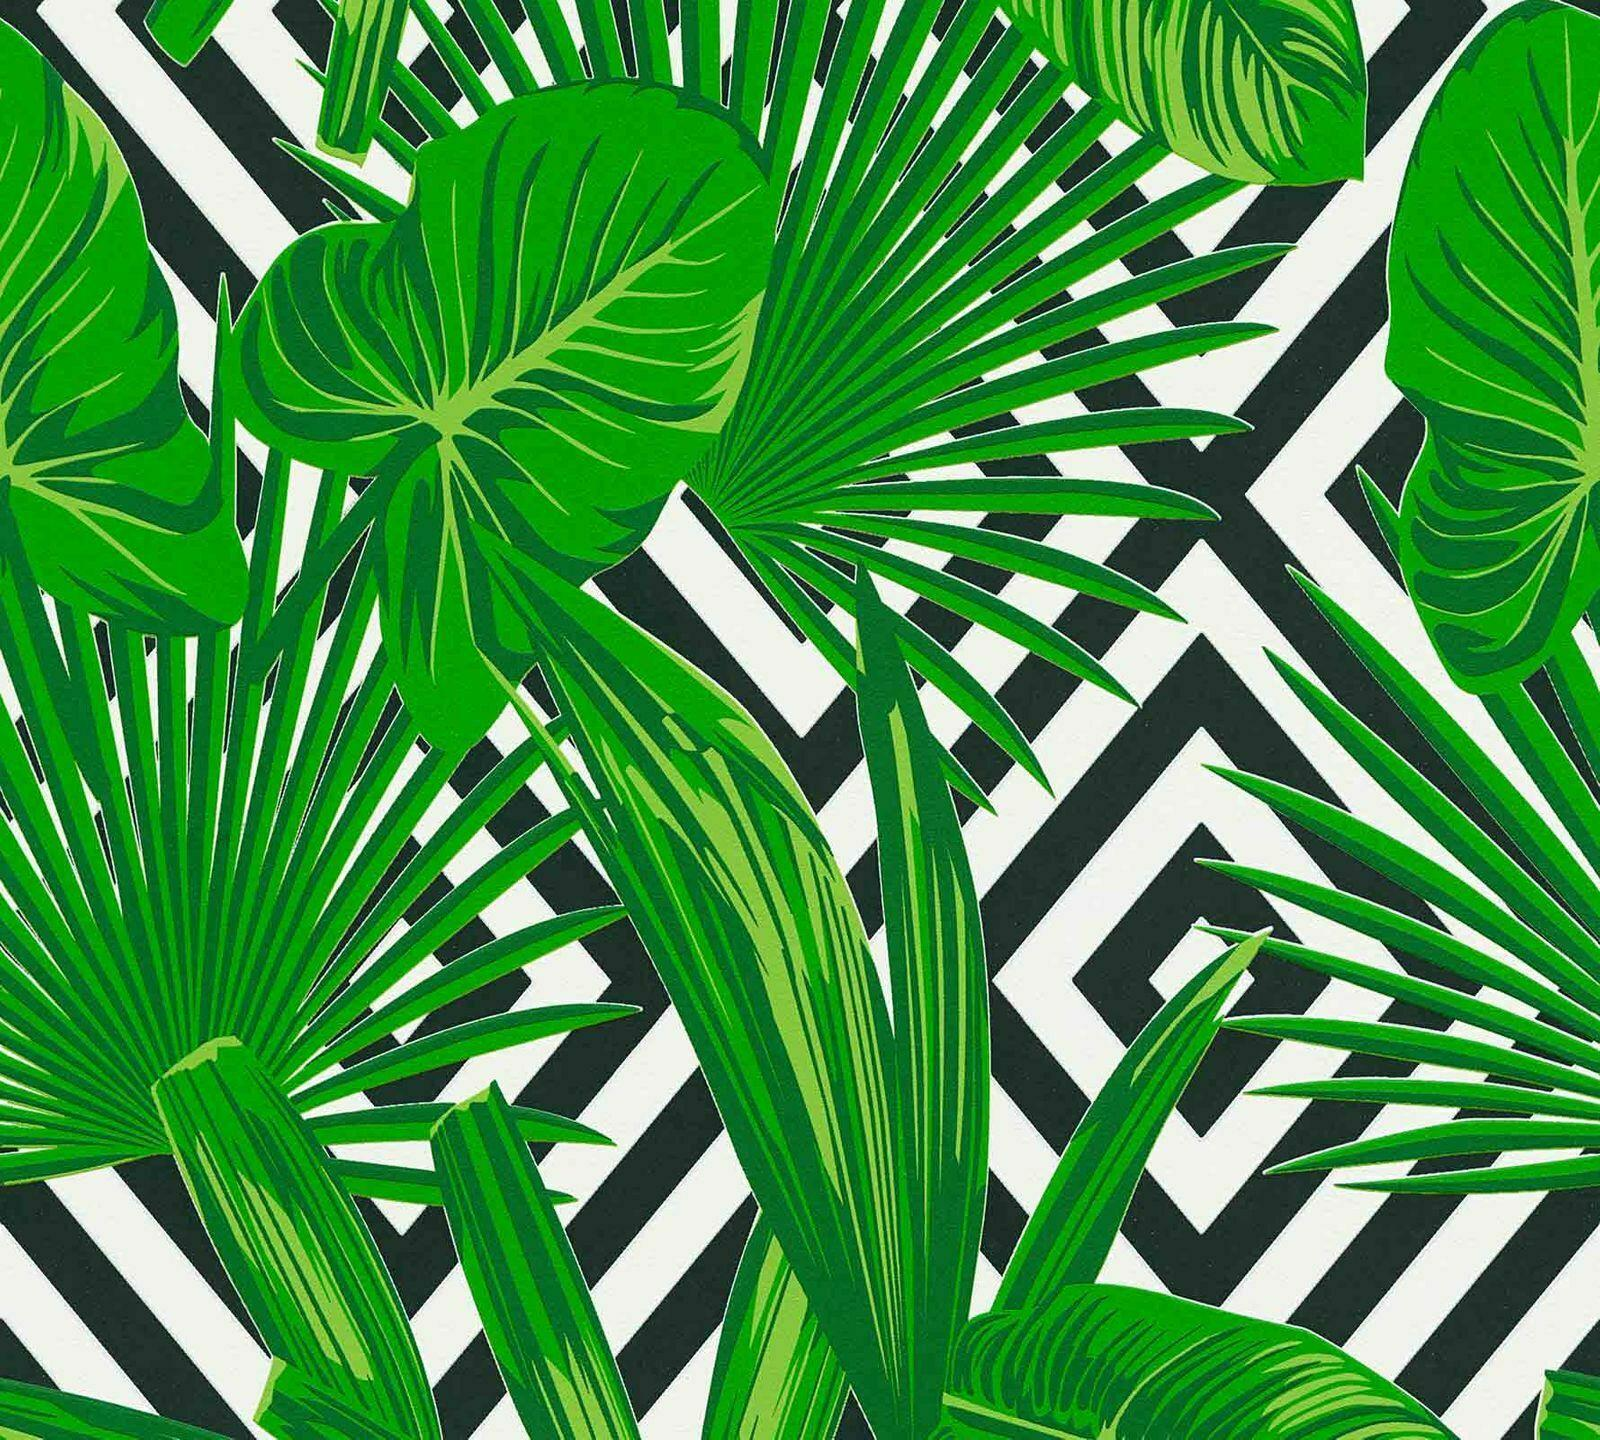 Tropical Leaf Wallpaper Leaves Diamond Geometric Green Black White Paste Wall Ebay The palm leaves on this removable wallpaper will have you dreaming about sun and sand in no time. details about tropical leaf wallpaper leaves diamond geometric green black white paste wall